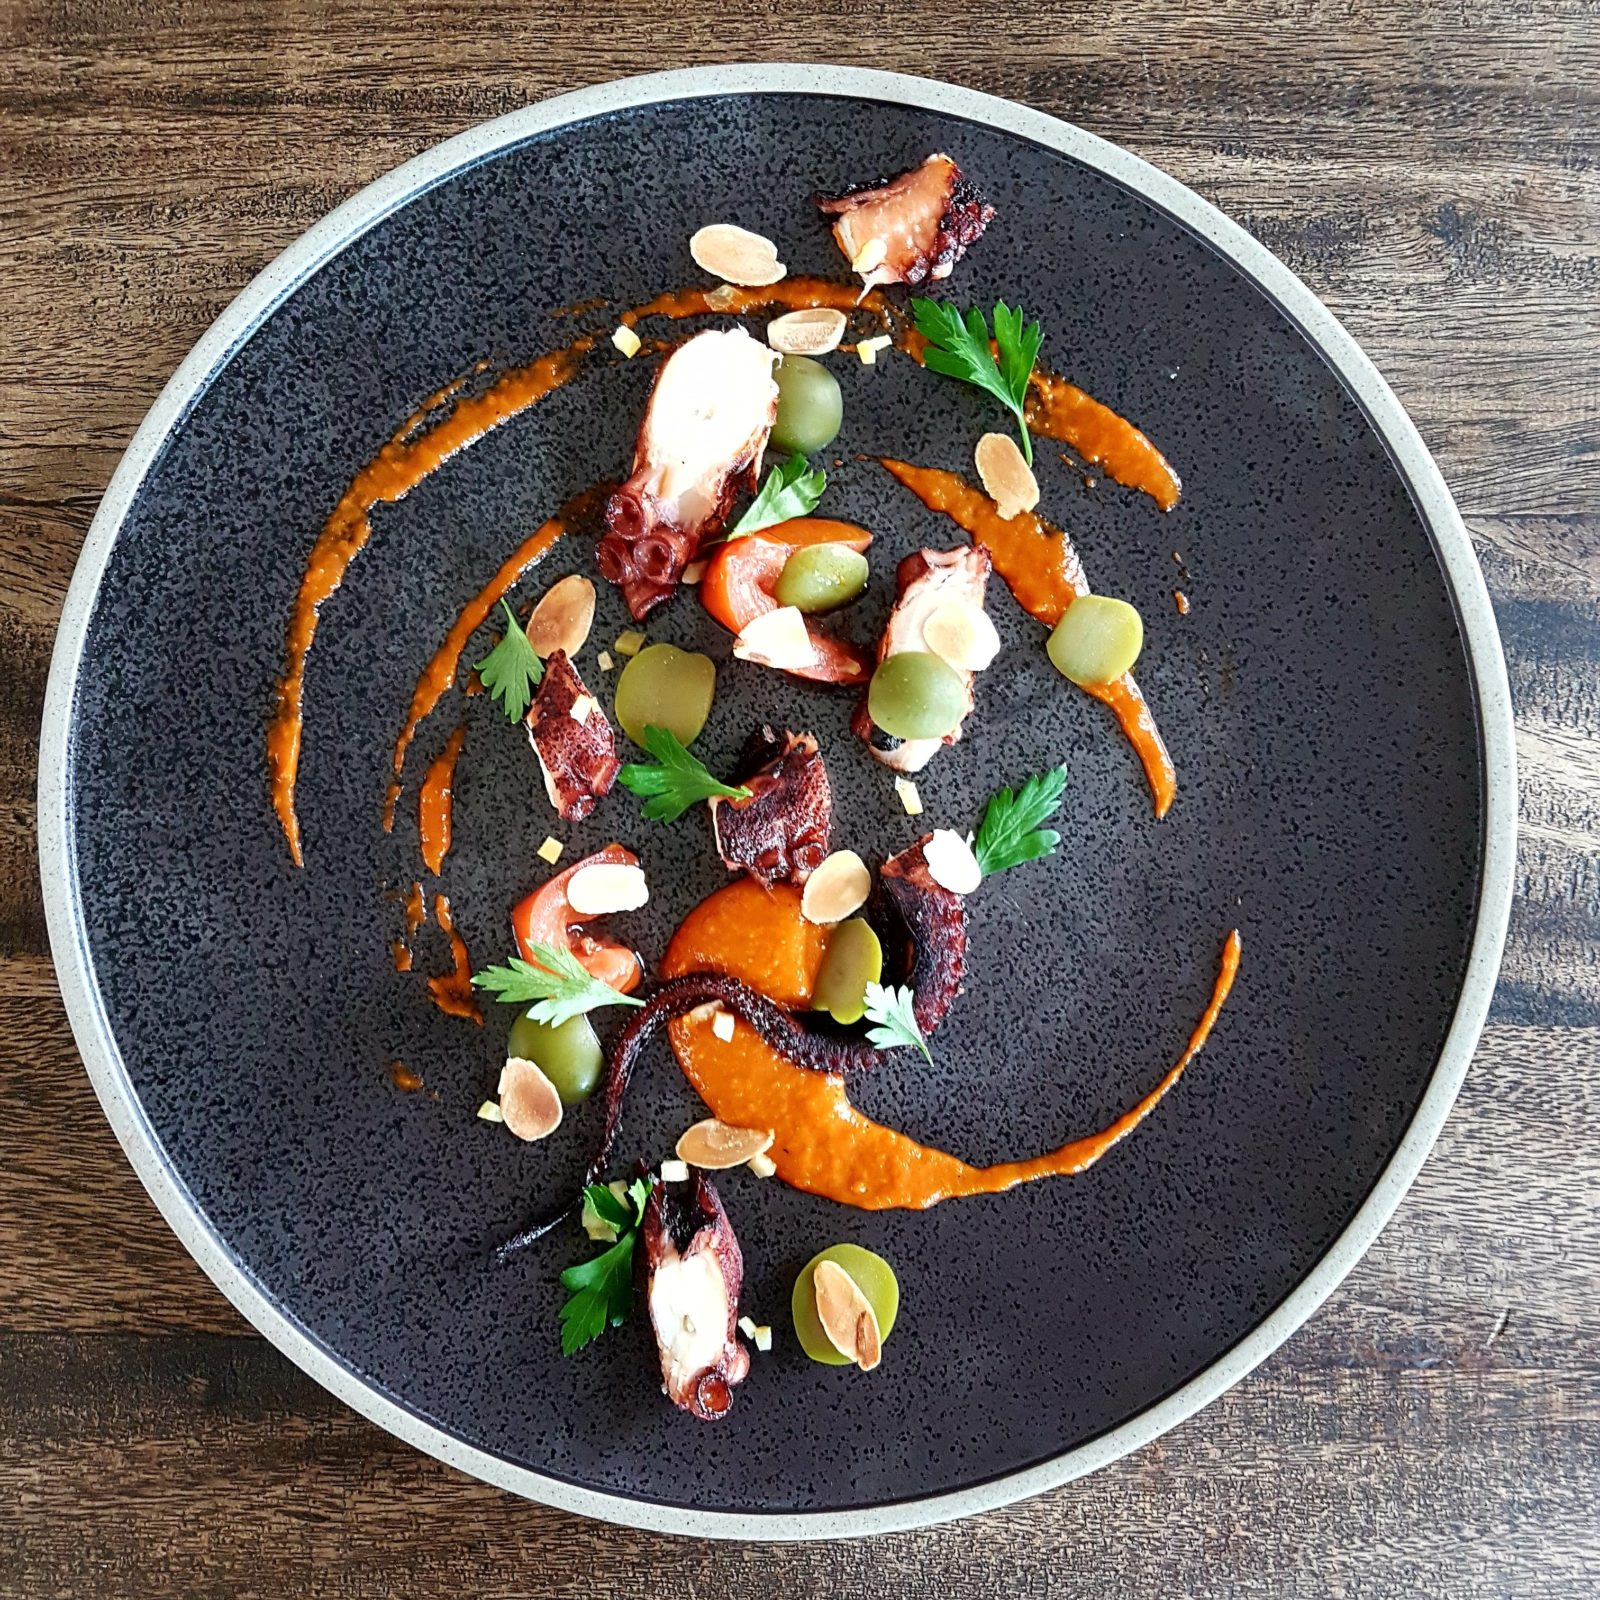 Char-grilled octopus with chilli jam, almonds, parsley and lemon